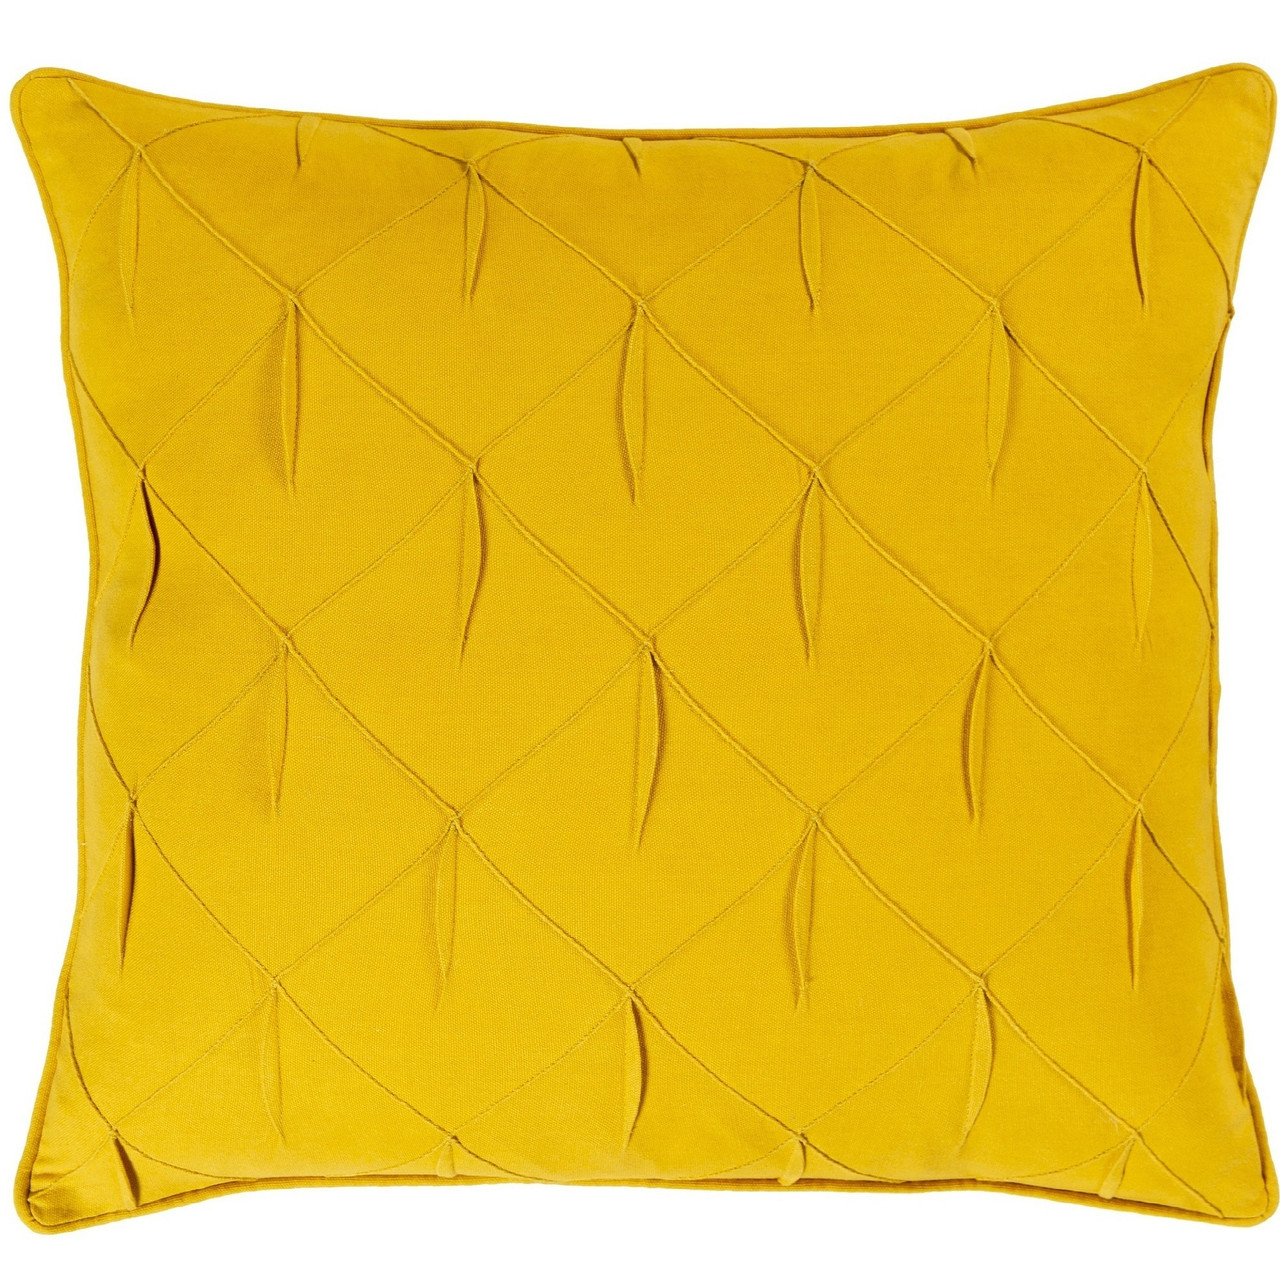 22 Yellow Textured Lattice Pattern With Fabric Manipulation Design Square Throw Pillow Cover Christmas Central